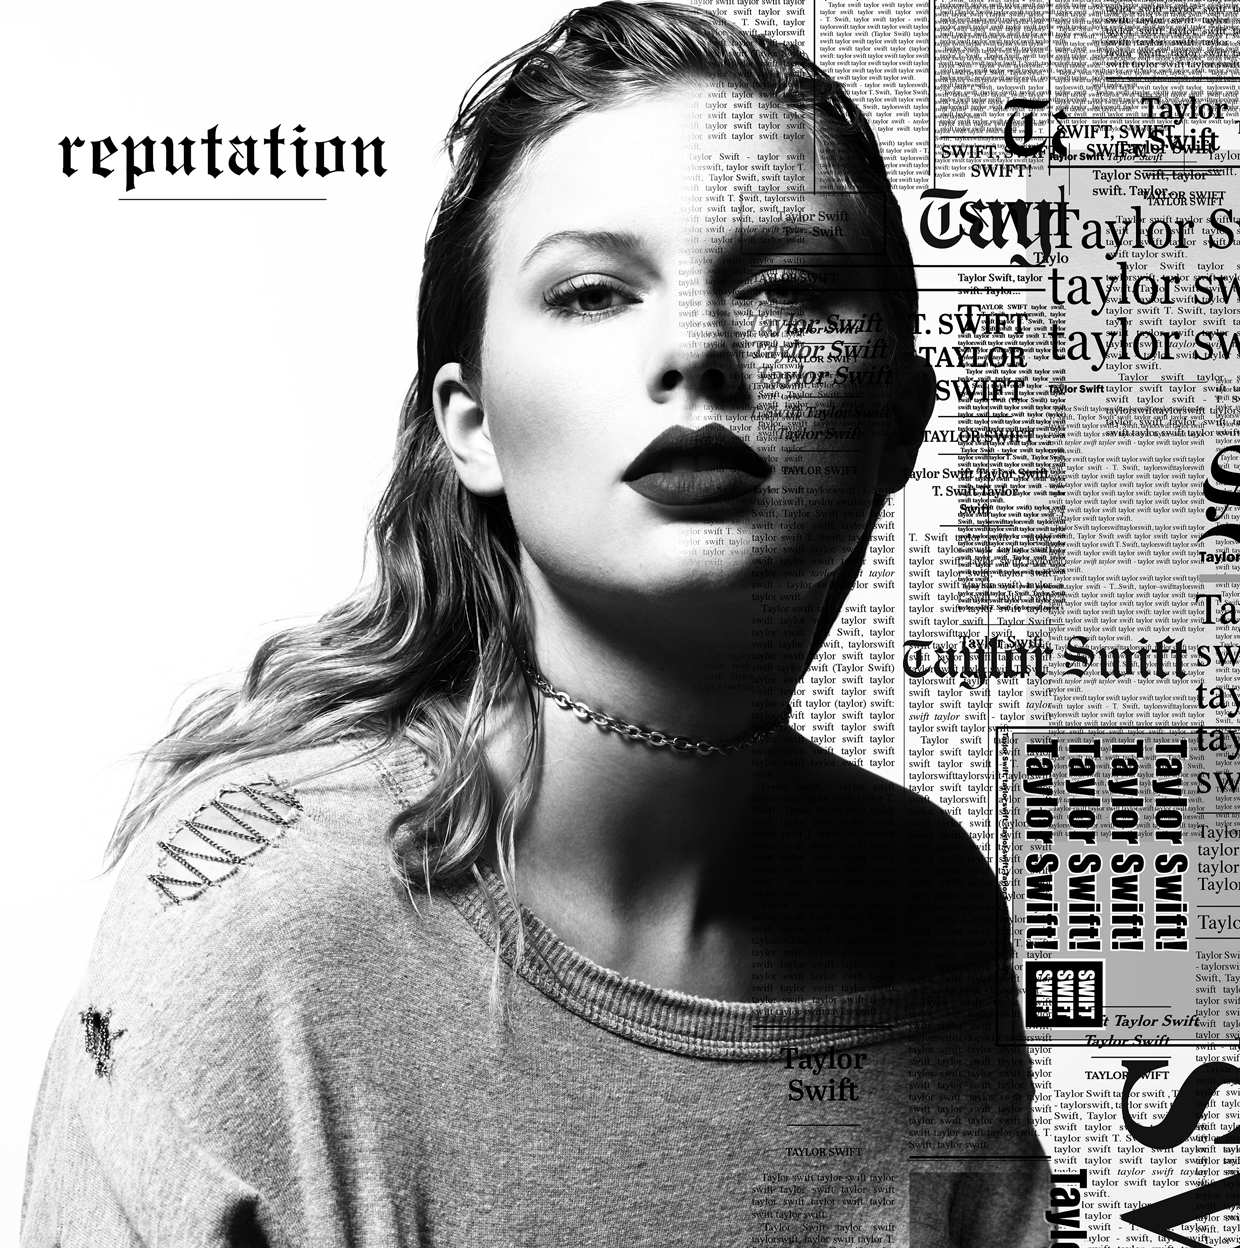 La evolución musical de Taylor Swift y su álbum Reputation